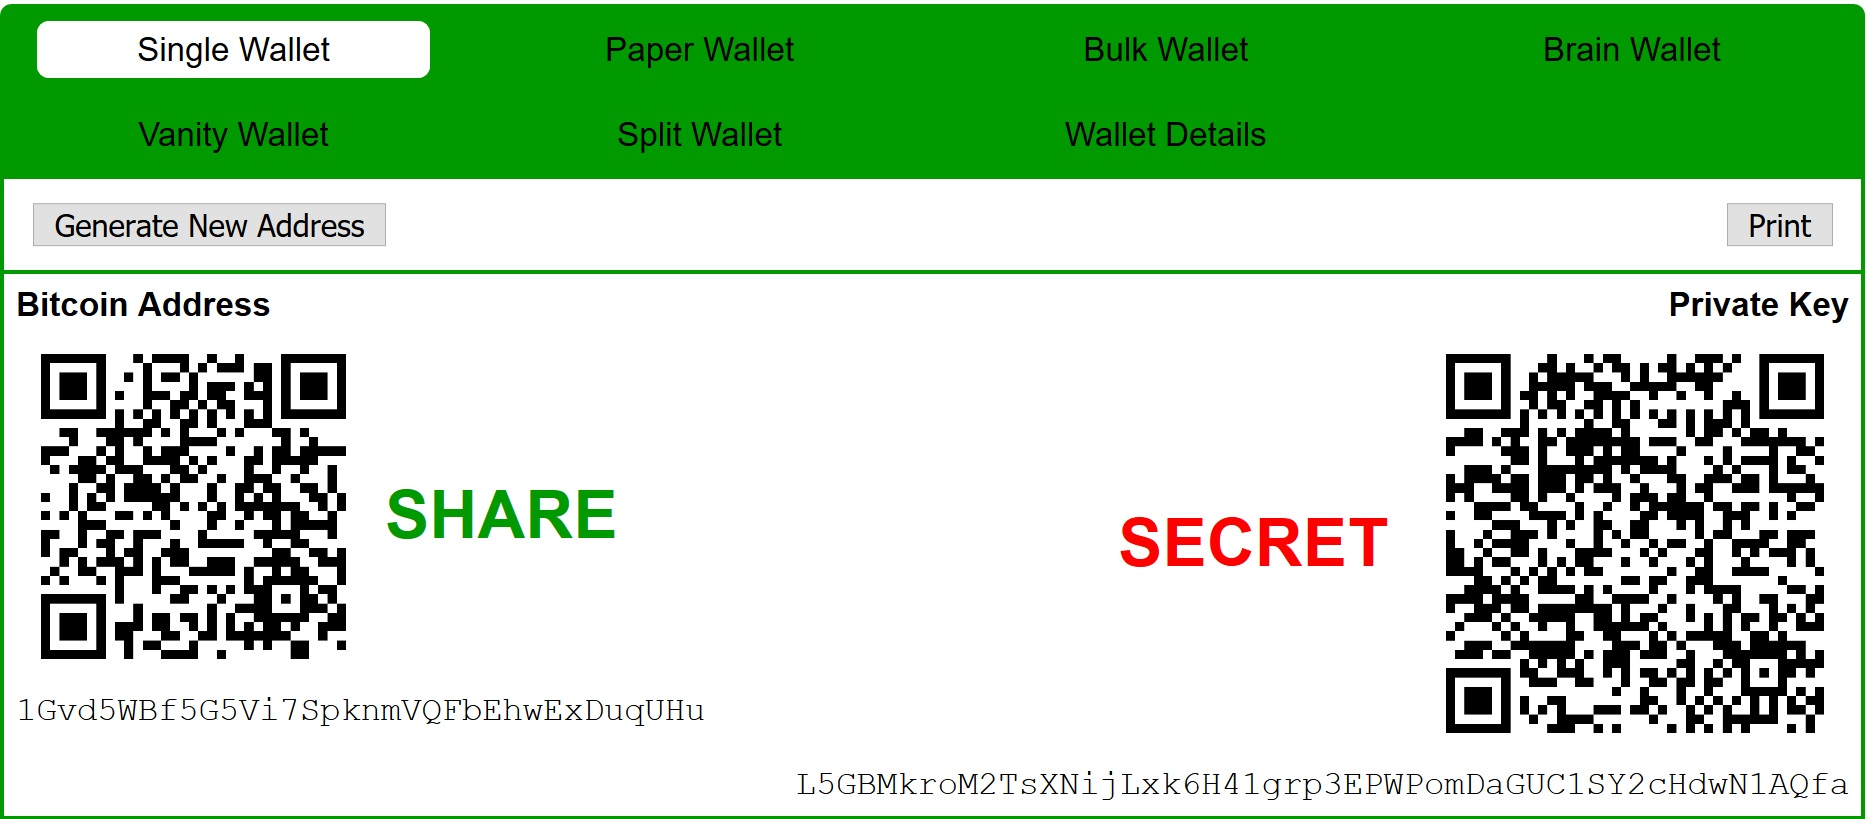 public and private key on paper wallet